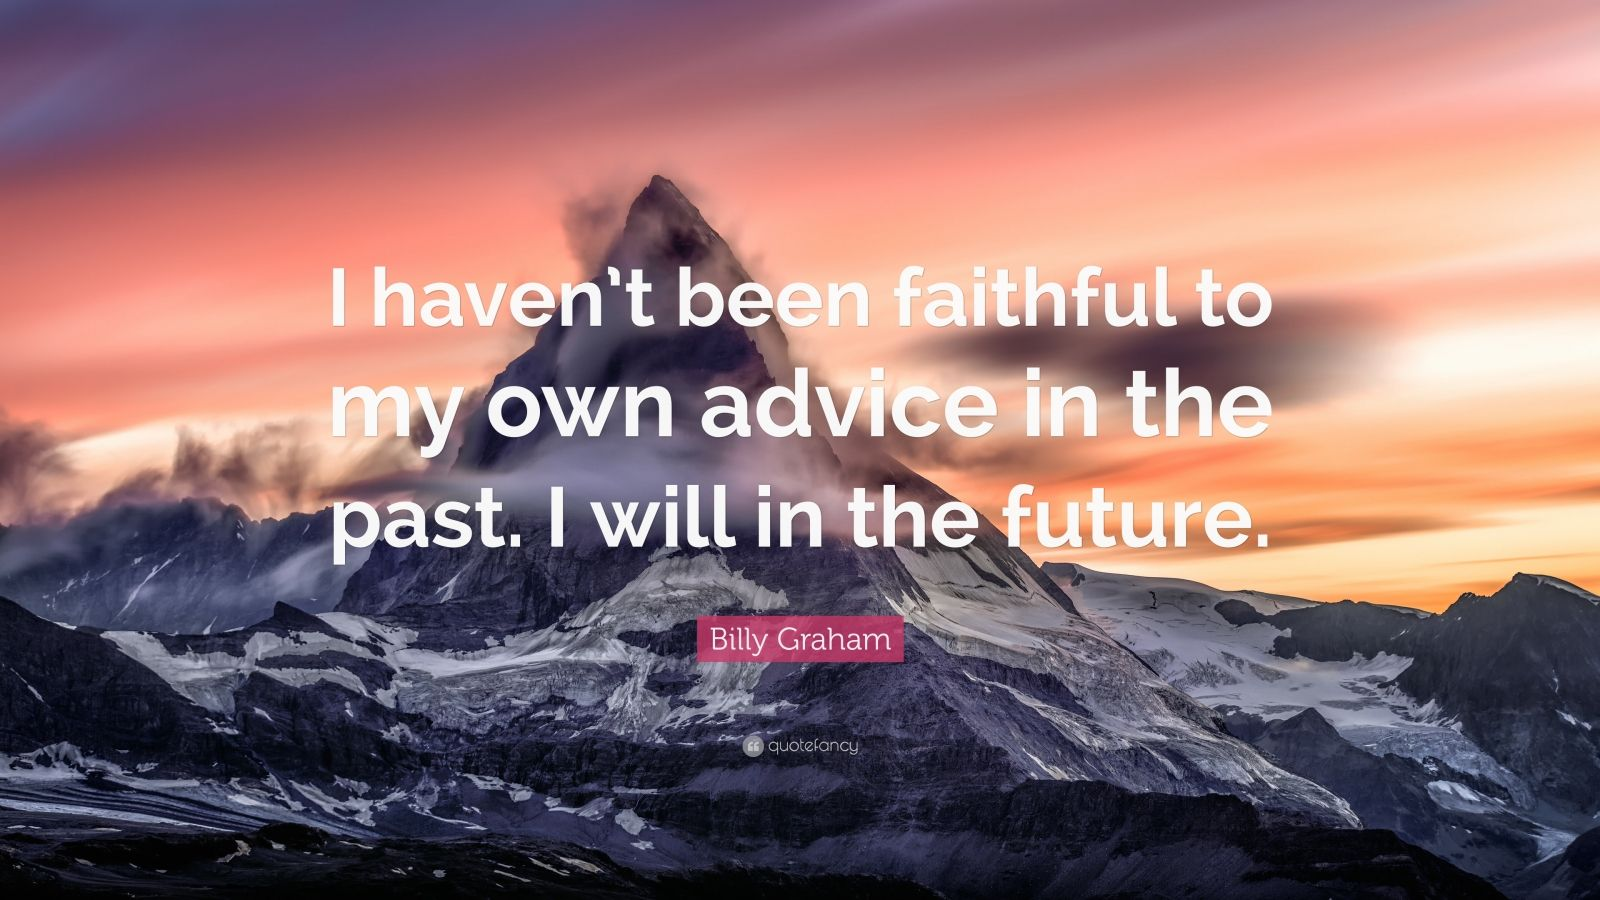 """Billy Graham Quote: """"I haven't been faithful to my own advice in the past. I will in the future."""""""